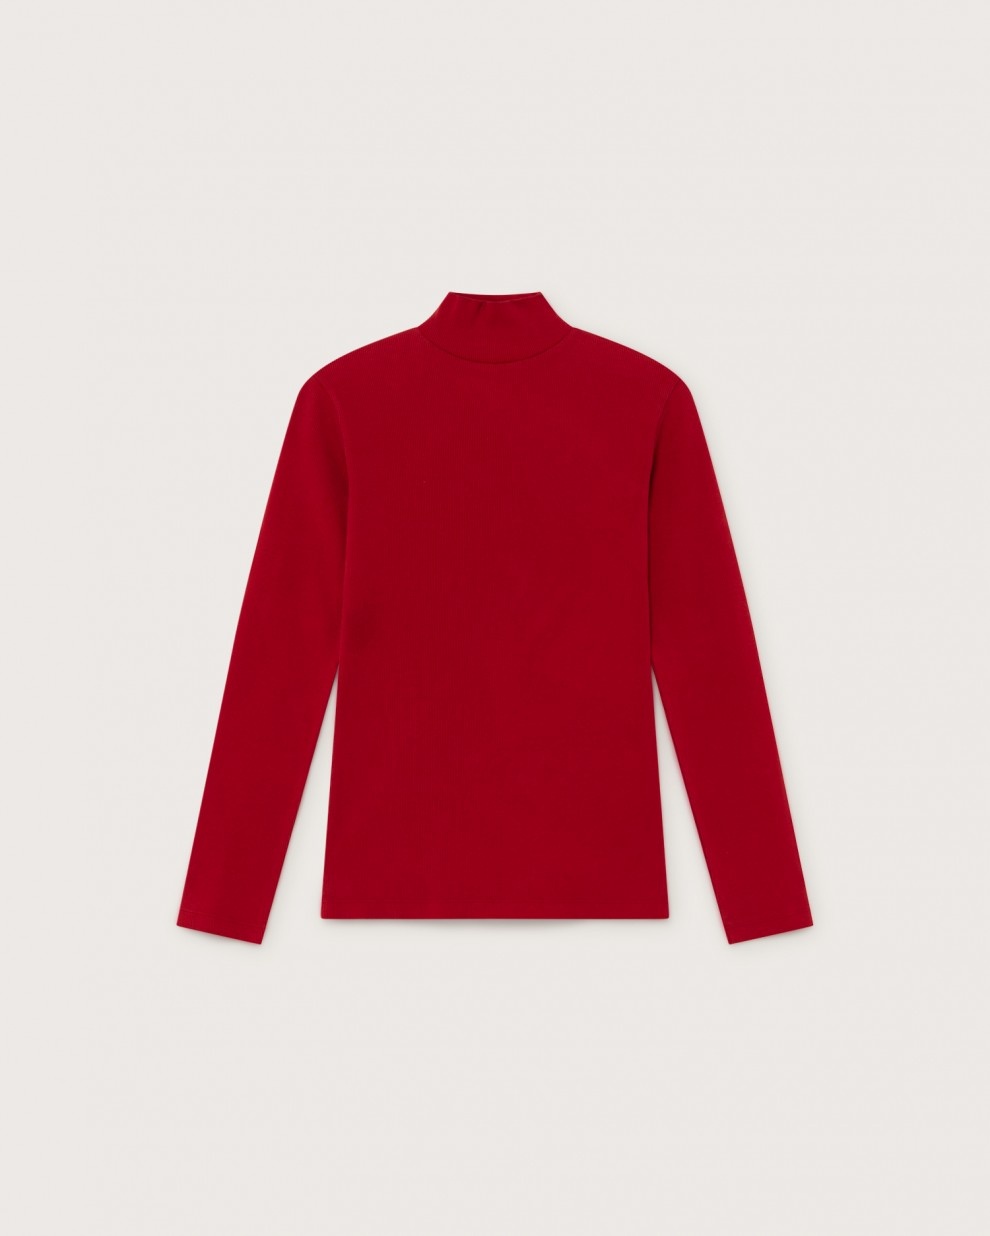 RED RIB AINE L/S TOP